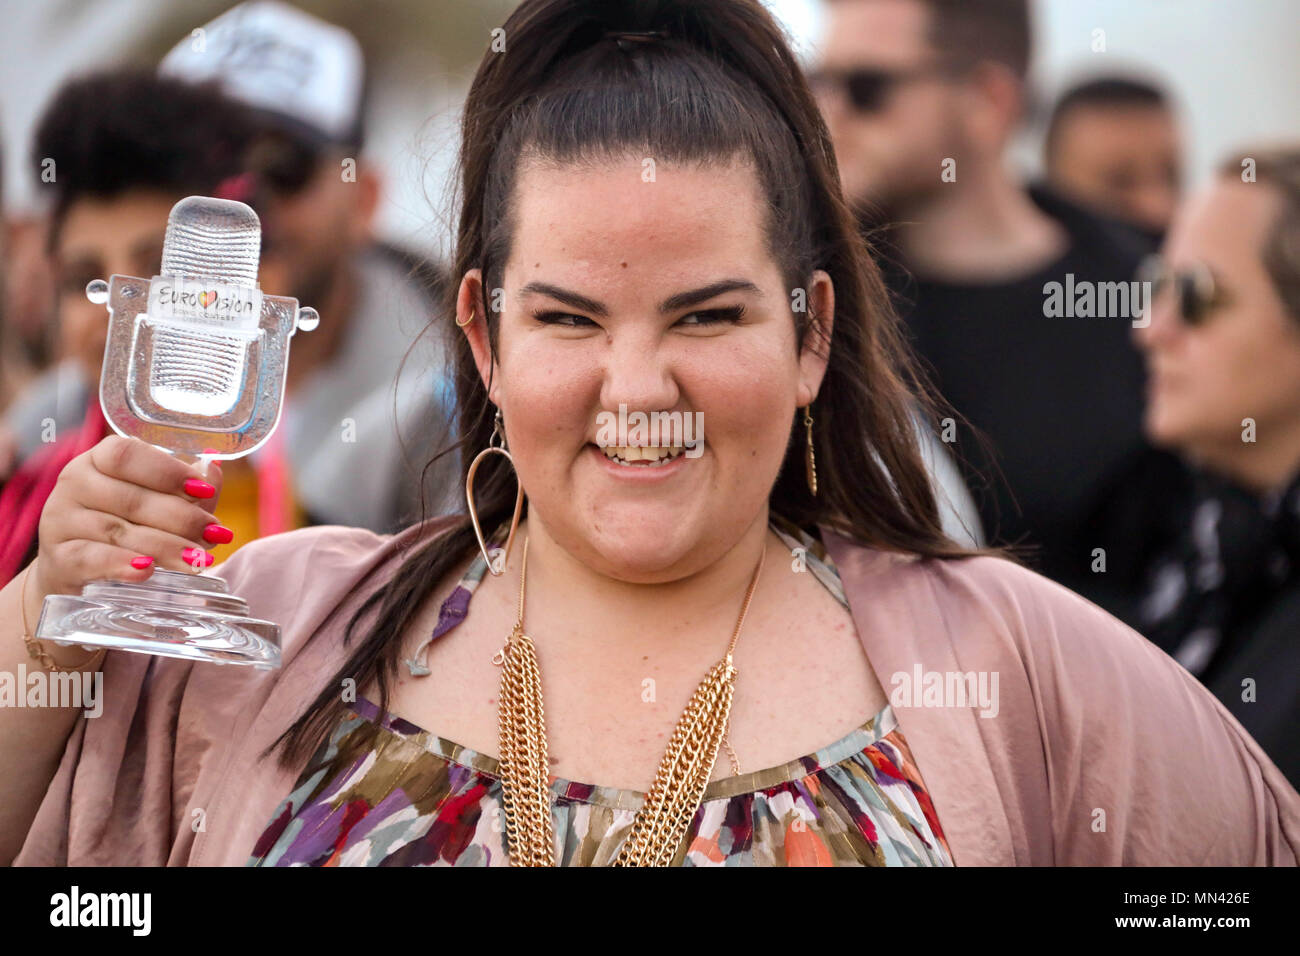 Tel Aviv. 14th May, 2018. Israel's Netta Barzilai poses for photographs as she arrives at Ben Gurion Airport near Tel Aviv on May 14, 2018. Credit: Gideon Marrkowicz-JINI/Xinhua/Alamy Live News - Stock Image